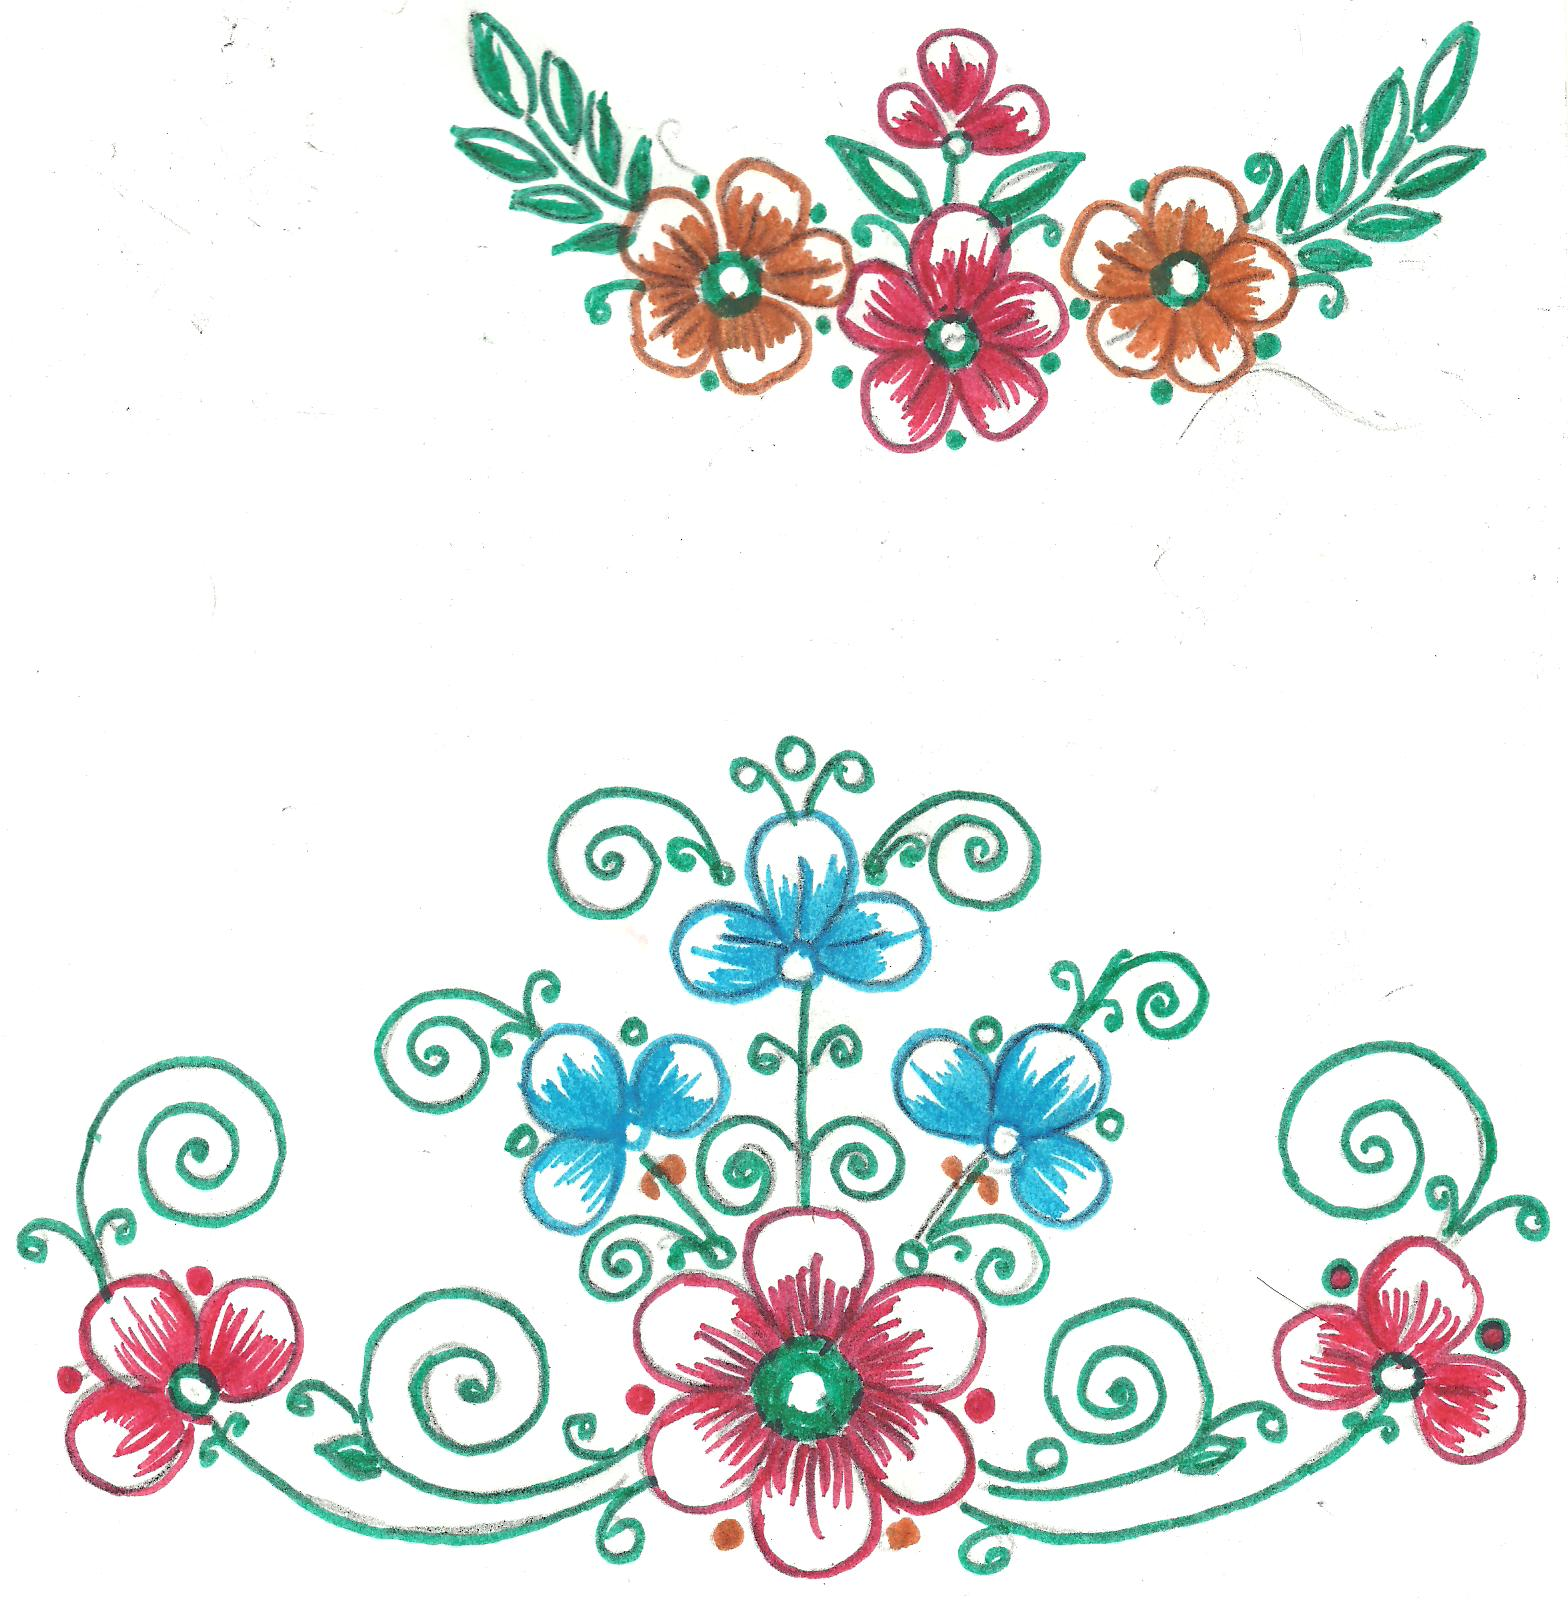 Embroidery Designs for Sarees Border http://seccxy.com/saree-border-designs-free&page=4